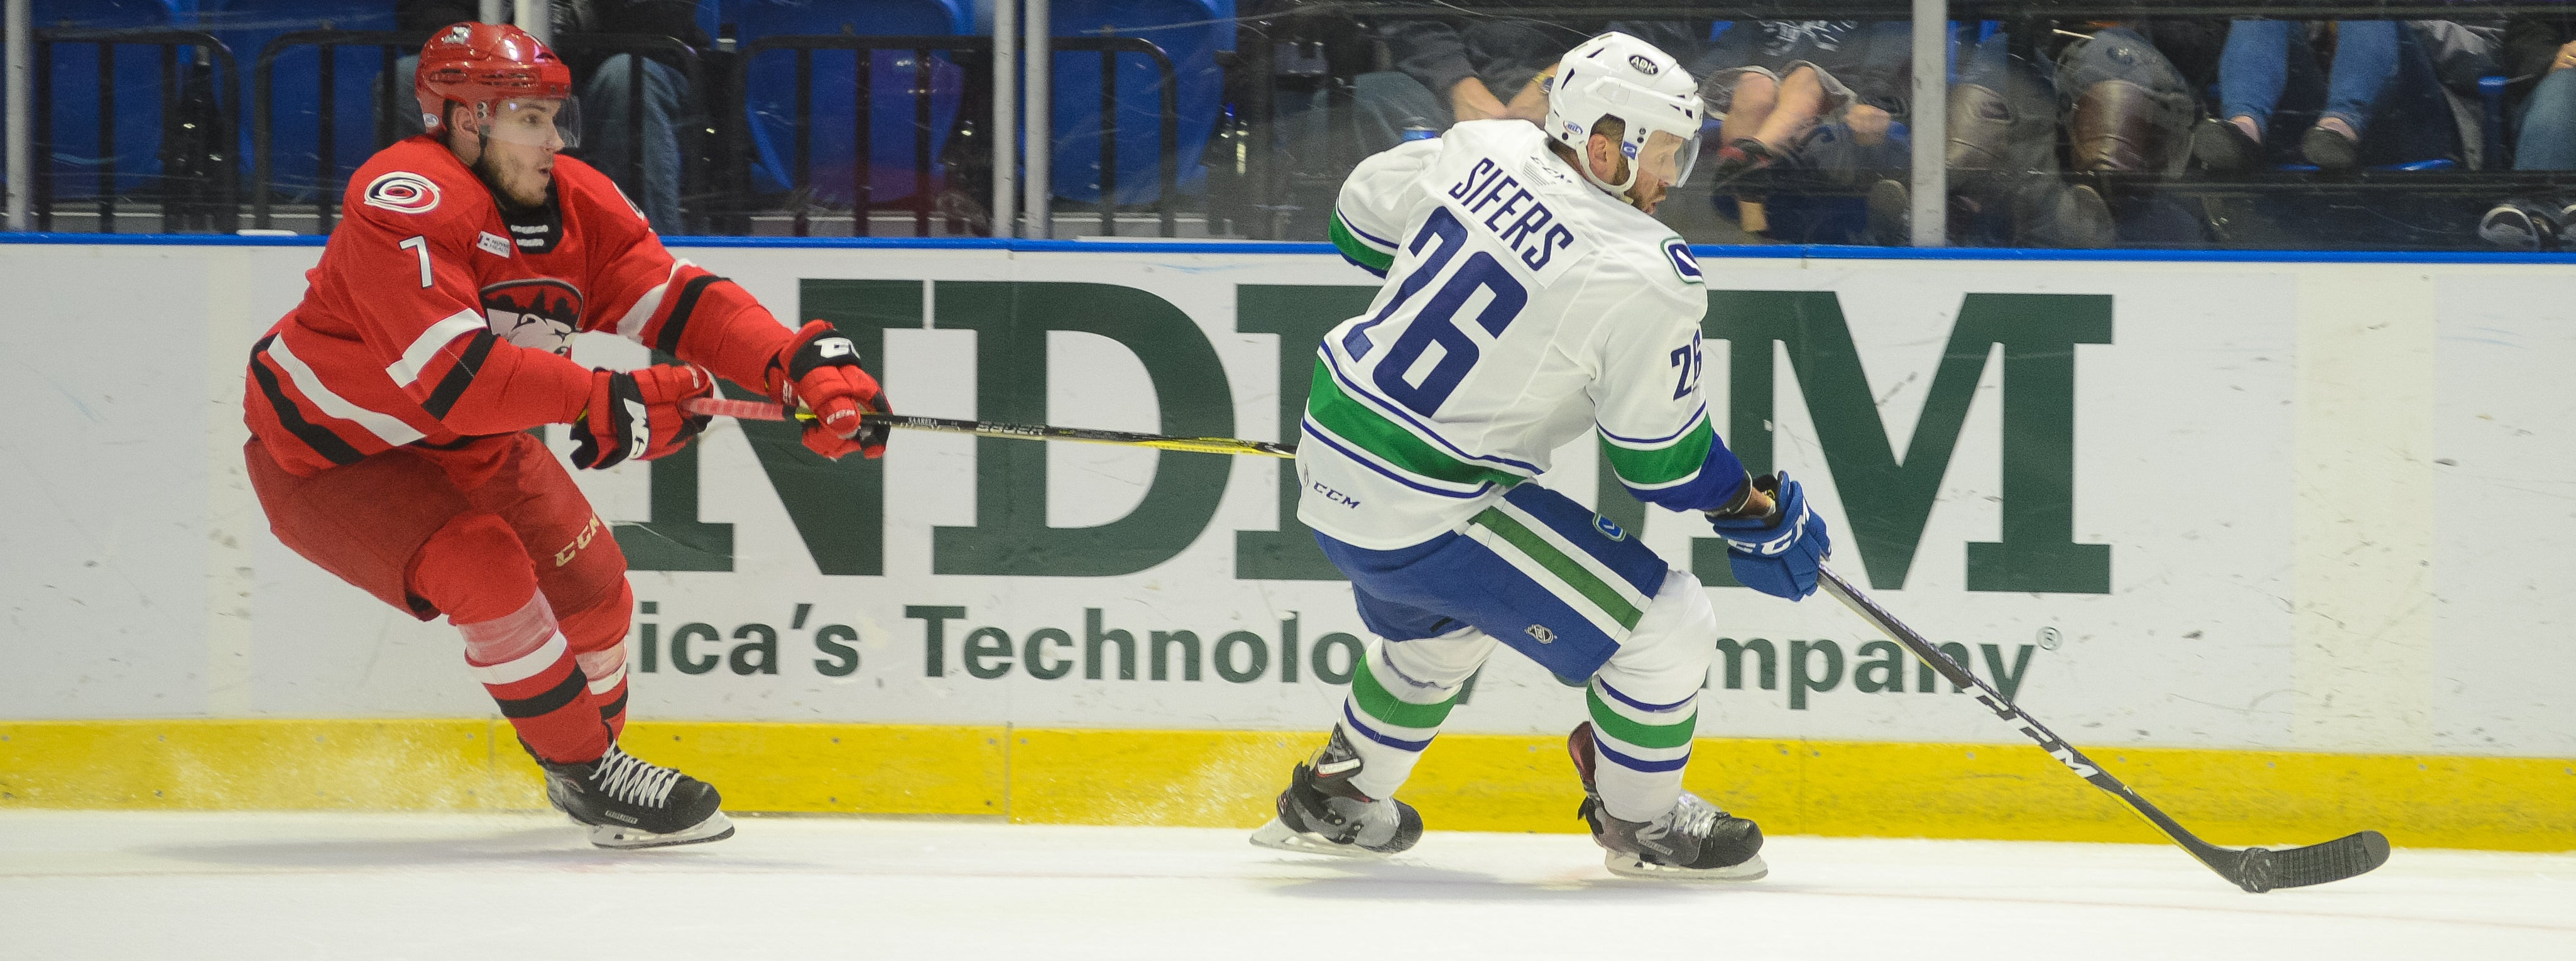 COMETS TAKE ON CHECKERS IN SUNDAY MATINEE